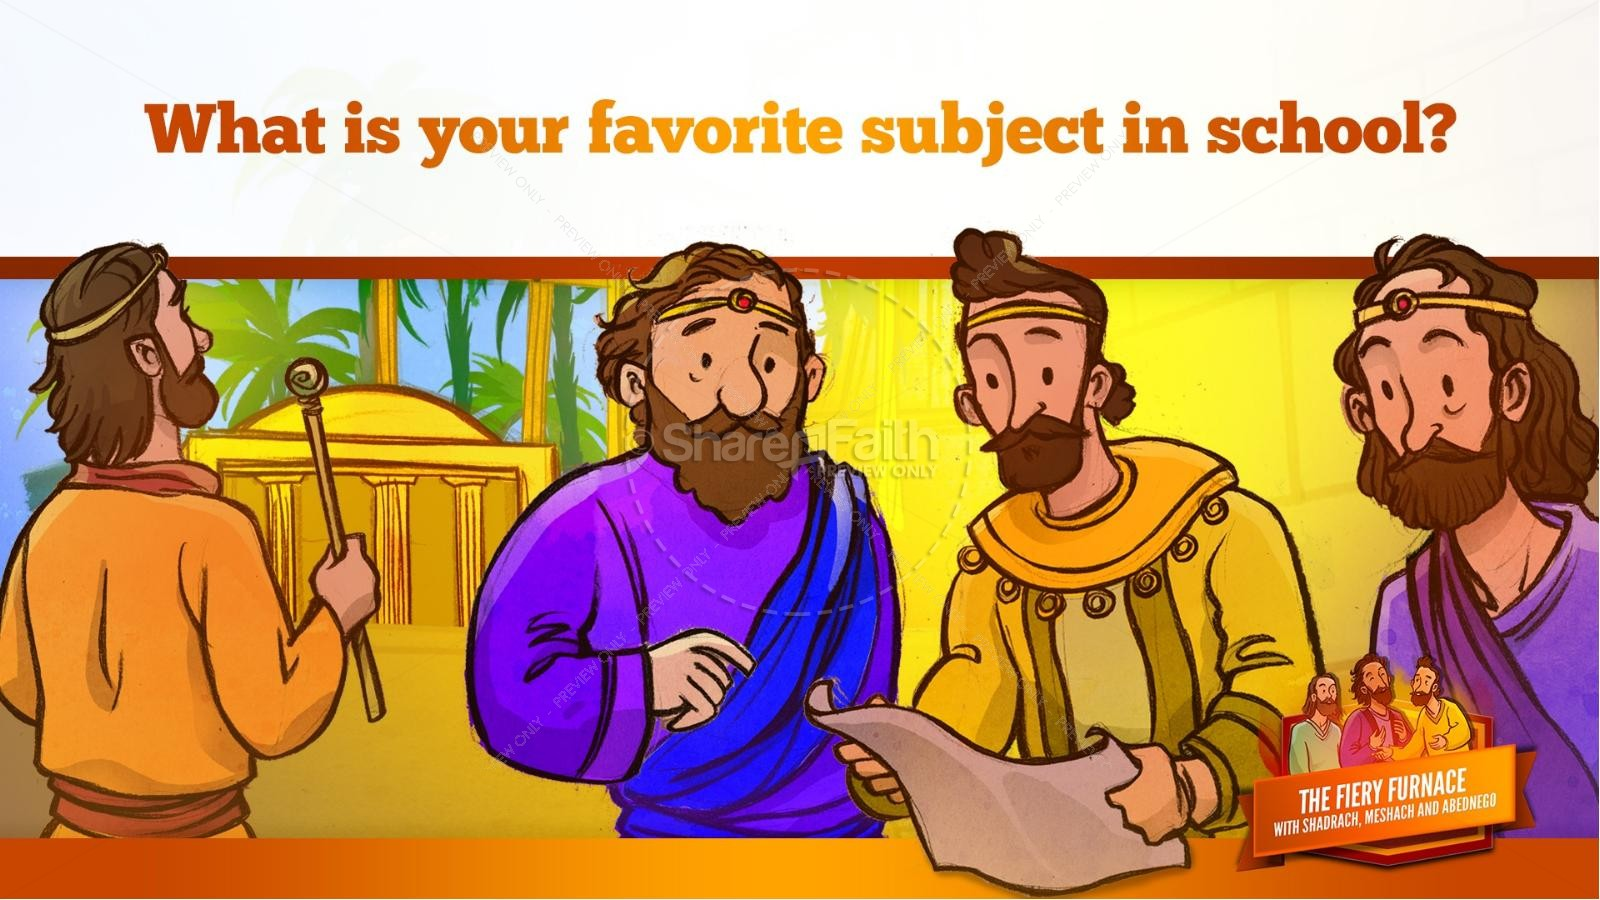 The Fiery Furnace with Shadrach, Meshach and Abednego Kids Bible Story | slide 22